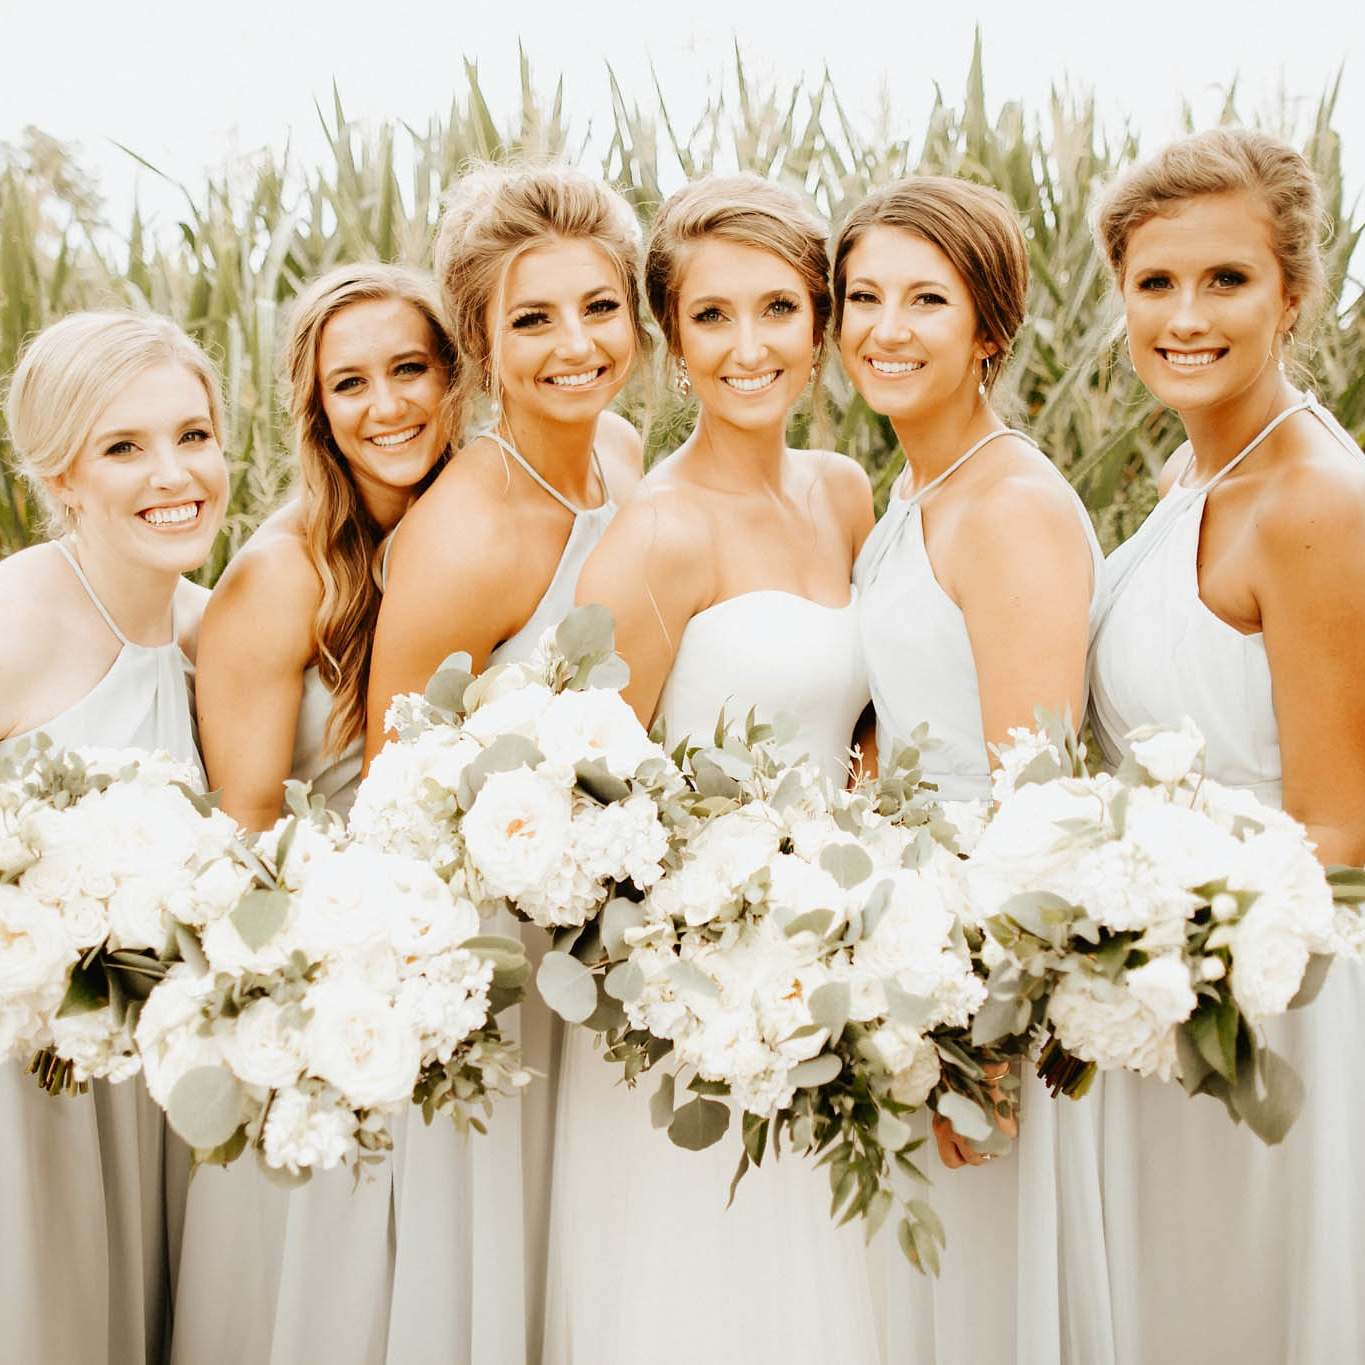 Wedding Chicks   How to Have a Rustic Chic With a Little Bit of Geek Wedding